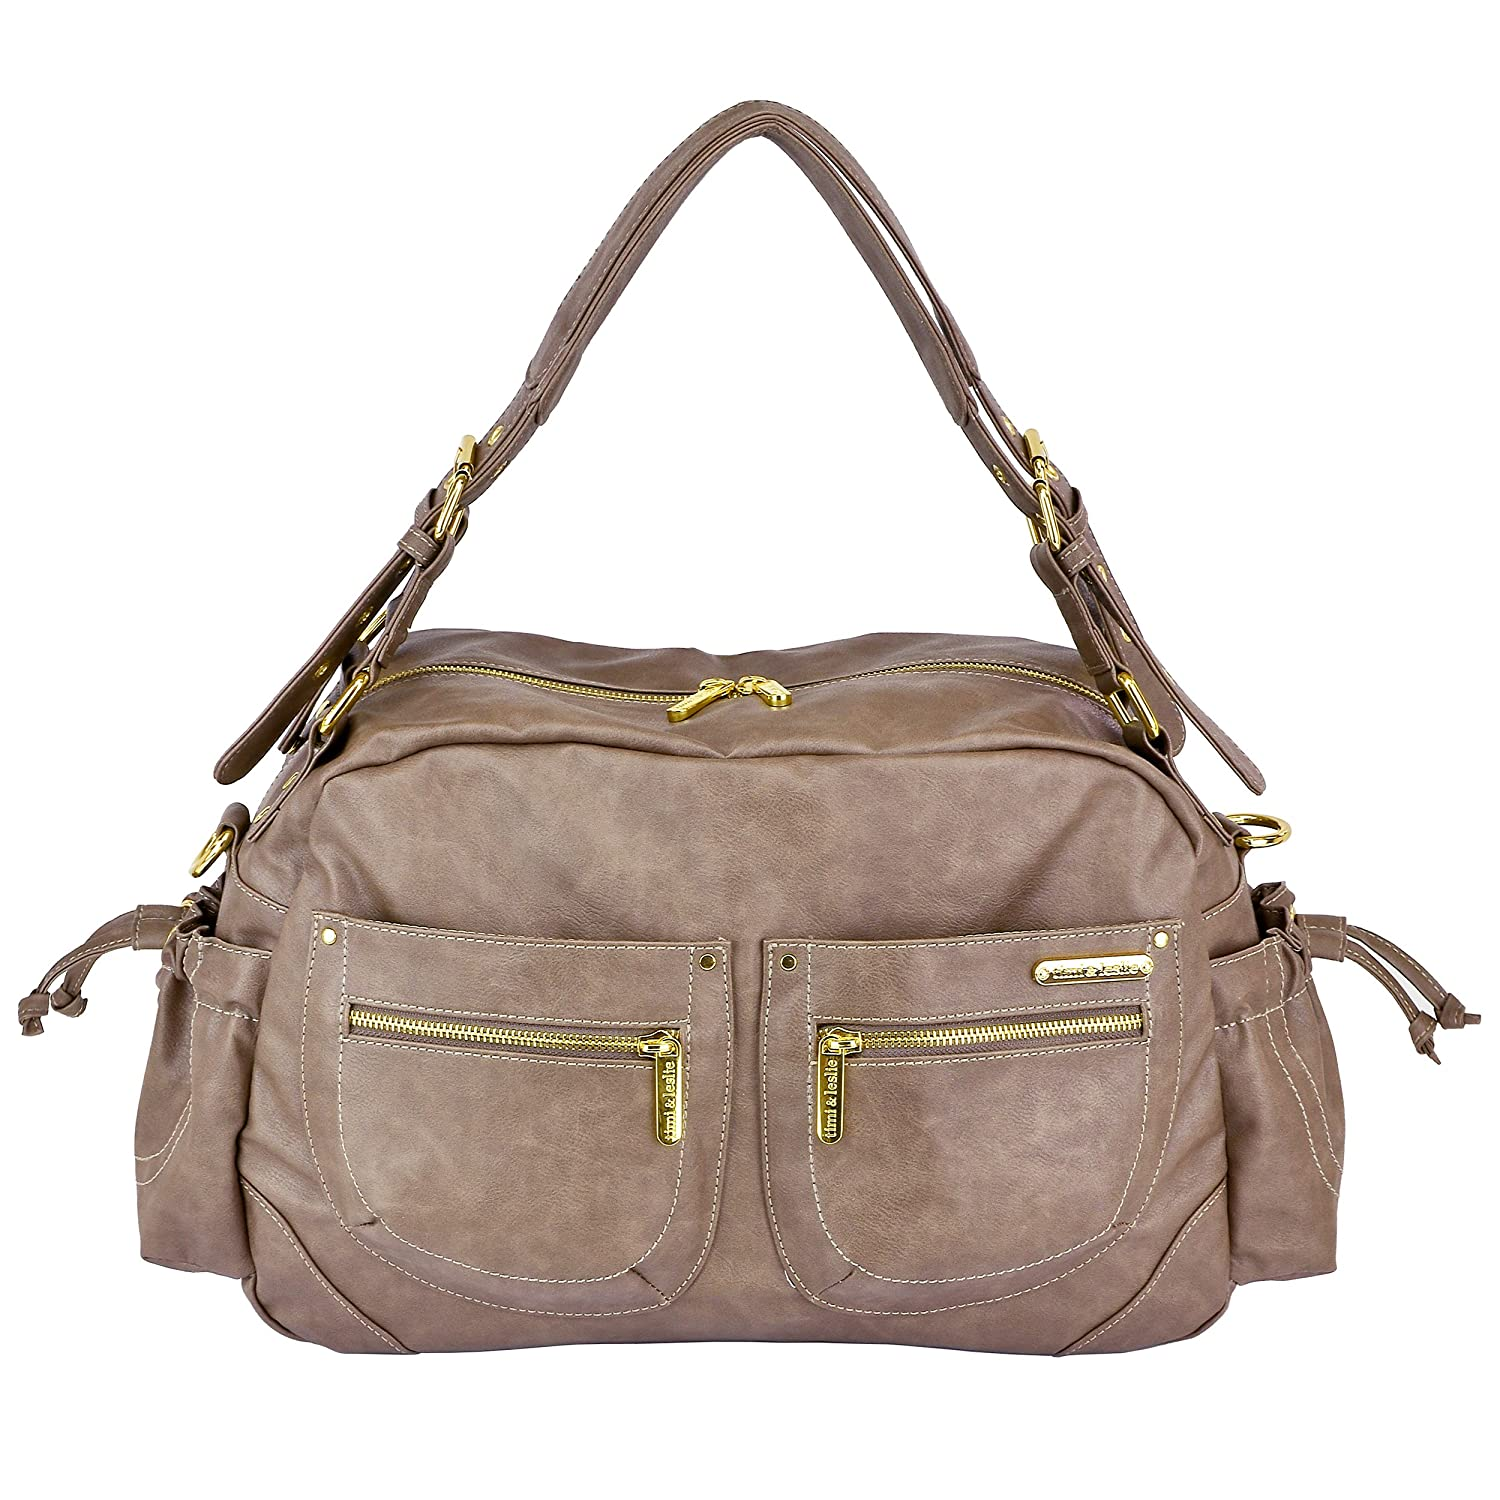 Amazon.com : Timi & Leslie Jessica 7-piece Diaper Bag Set, Taupe ... Beige Und Grn